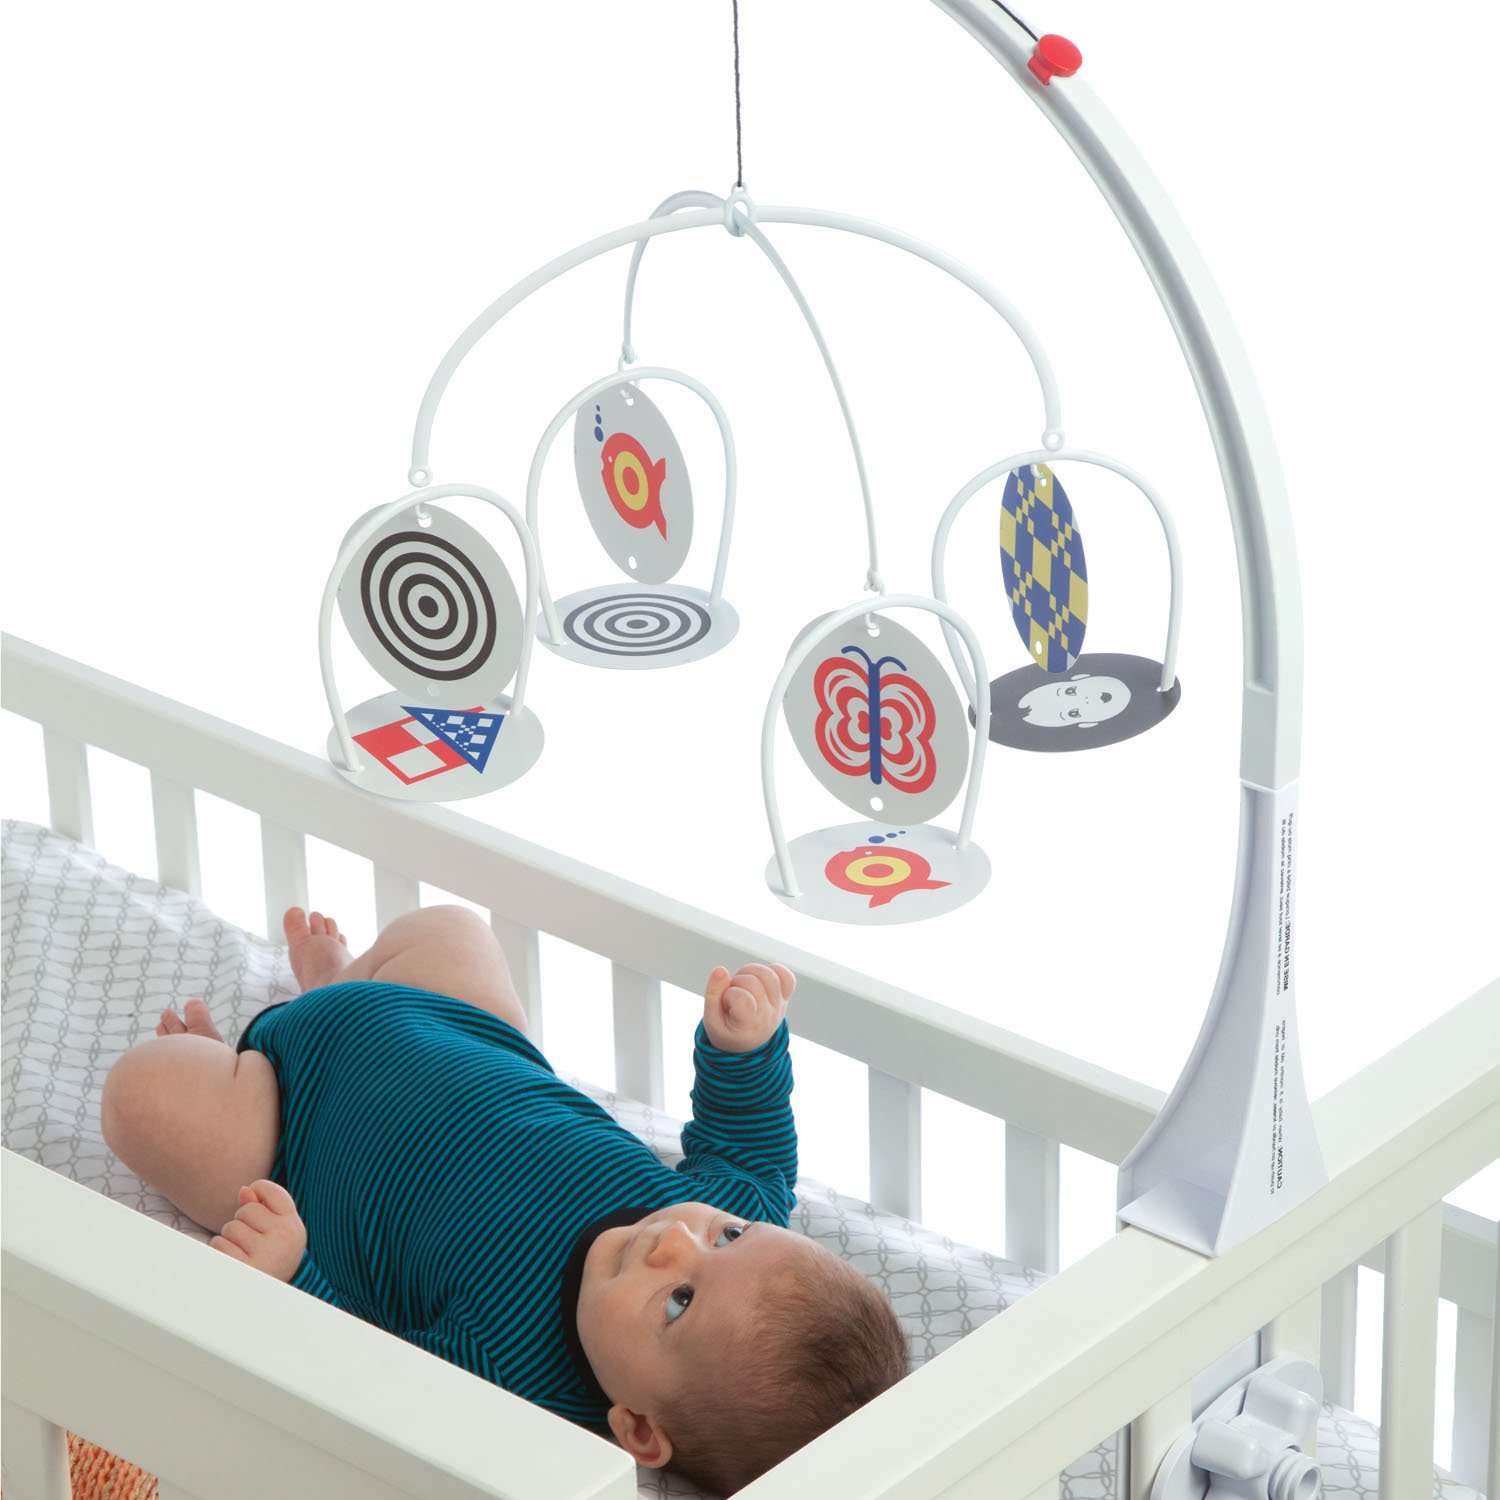 Crib mobiles bad for babies - Amazon Com Manhattan Toy Wimmer Ferguson Infant Stim Mobile For Cribs Toys Games